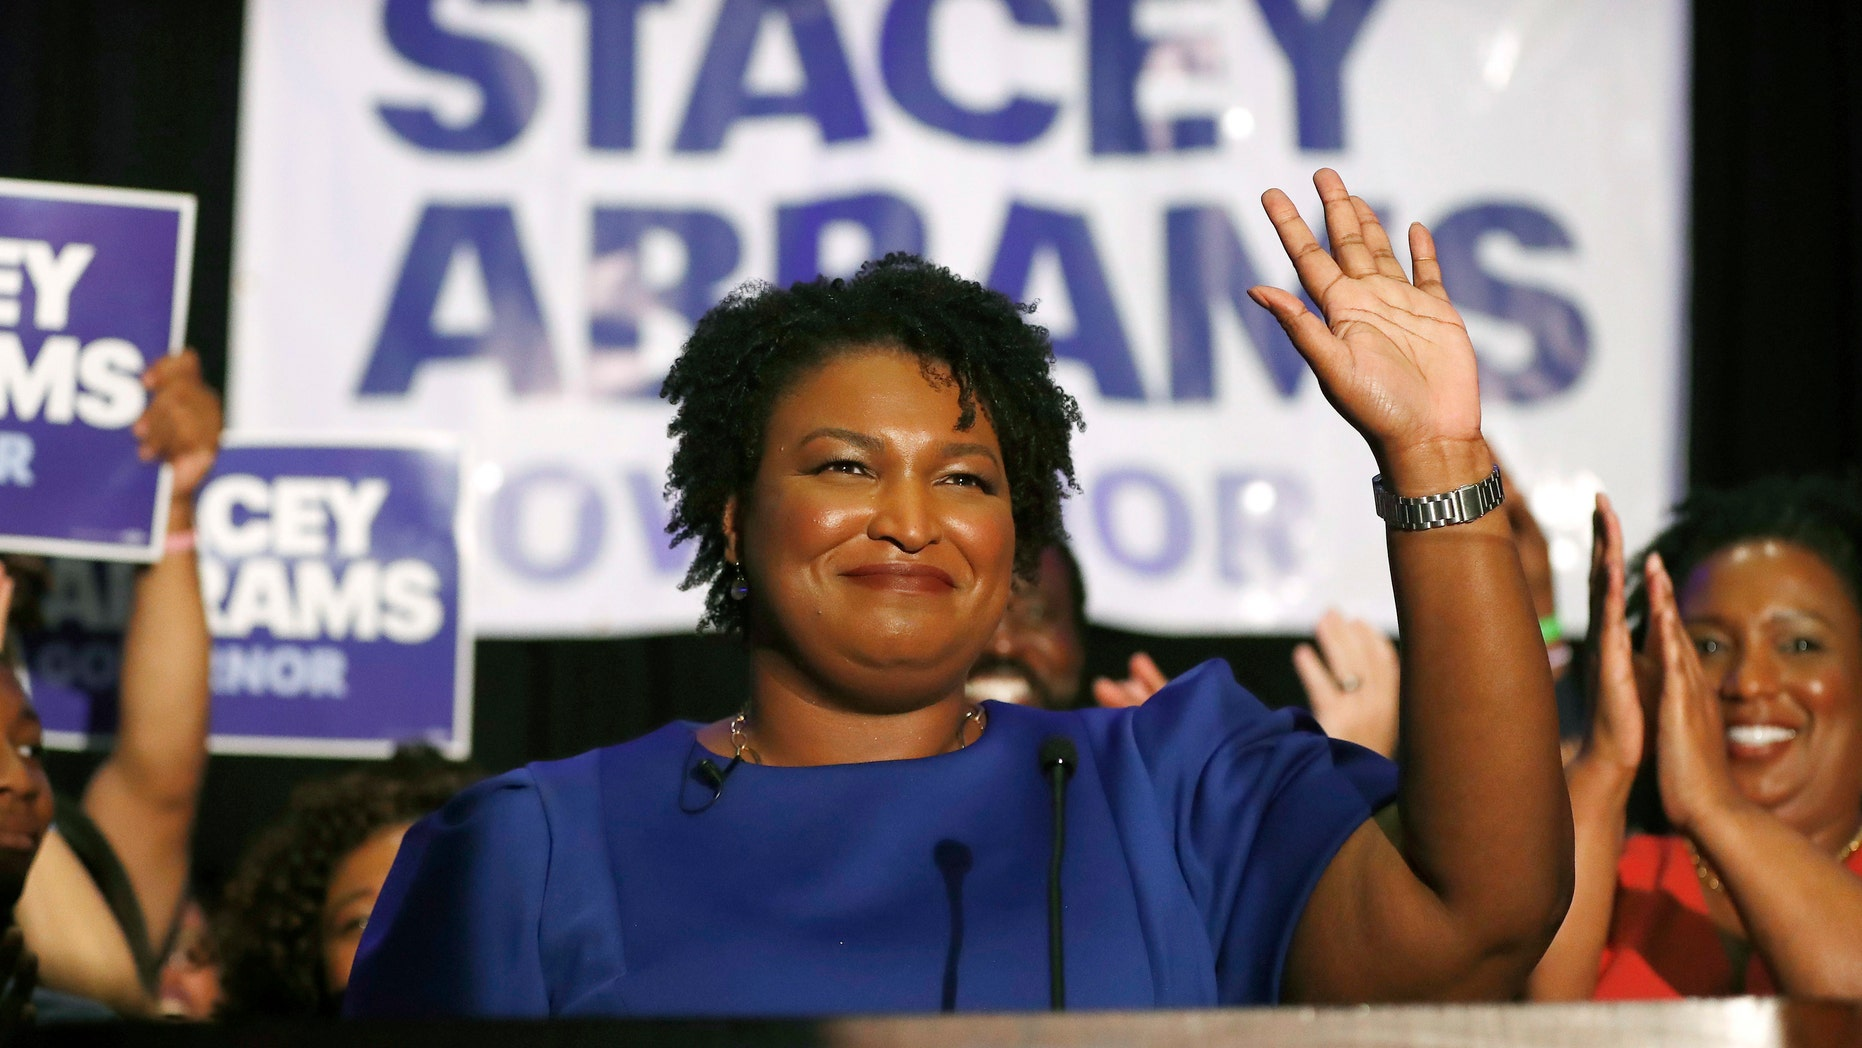 Stacey Abrams Burned Georgia's Flag in 1992 Protest — NY Times